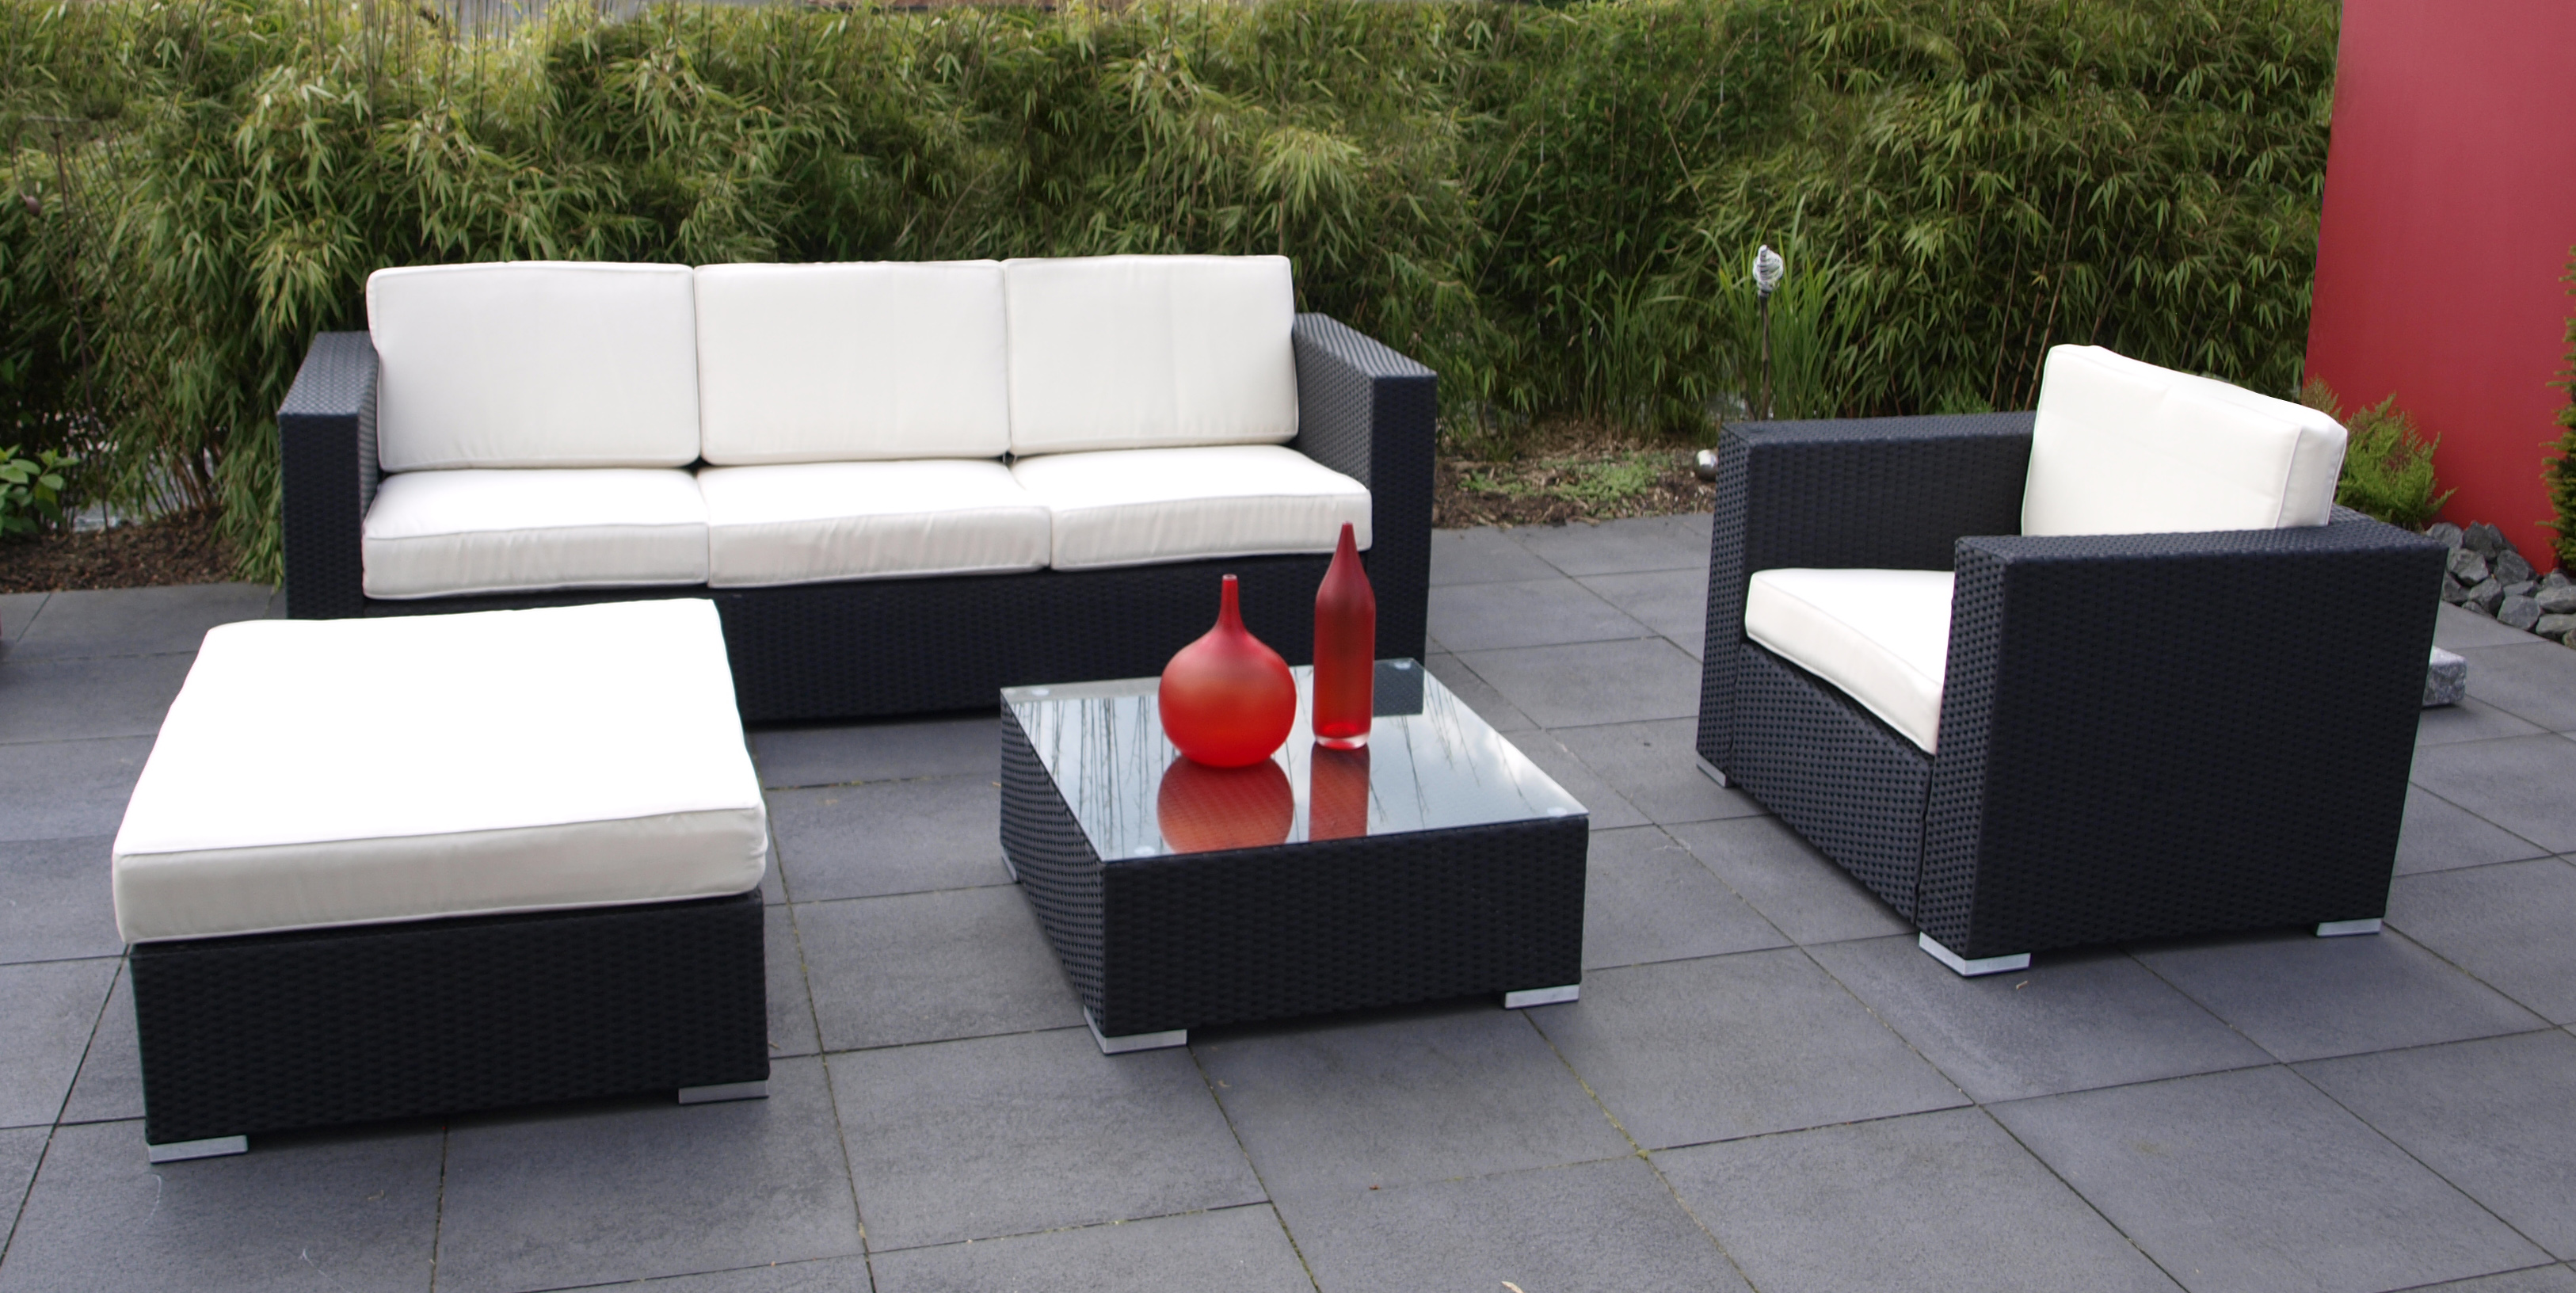 lounge set livorno 4 teilig garten terrasse balkon. Black Bedroom Furniture Sets. Home Design Ideas